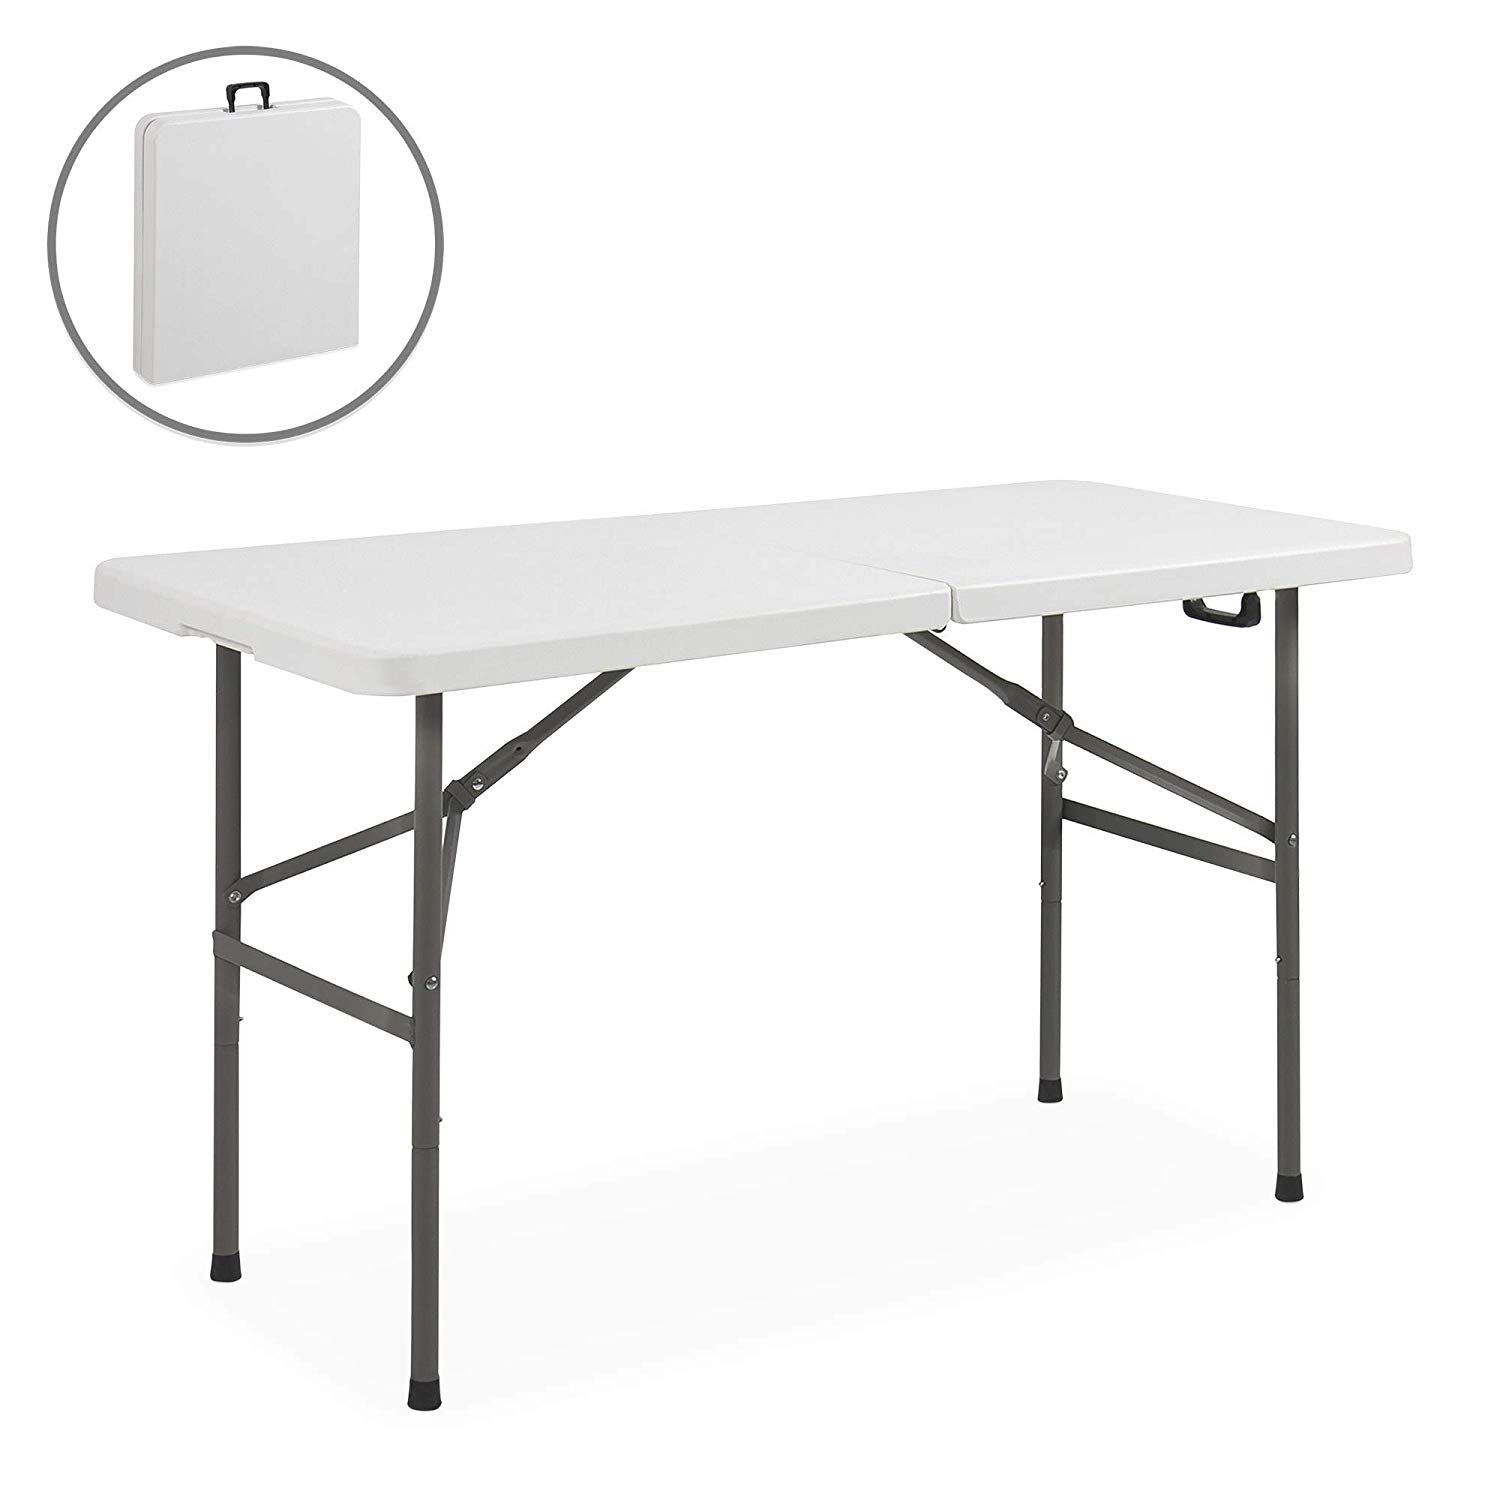 44 99 Portable Plastic Indoor Outdoor Picnic Party Dining Camp Tables Folding Table Camping Table Outdoor Folding Table